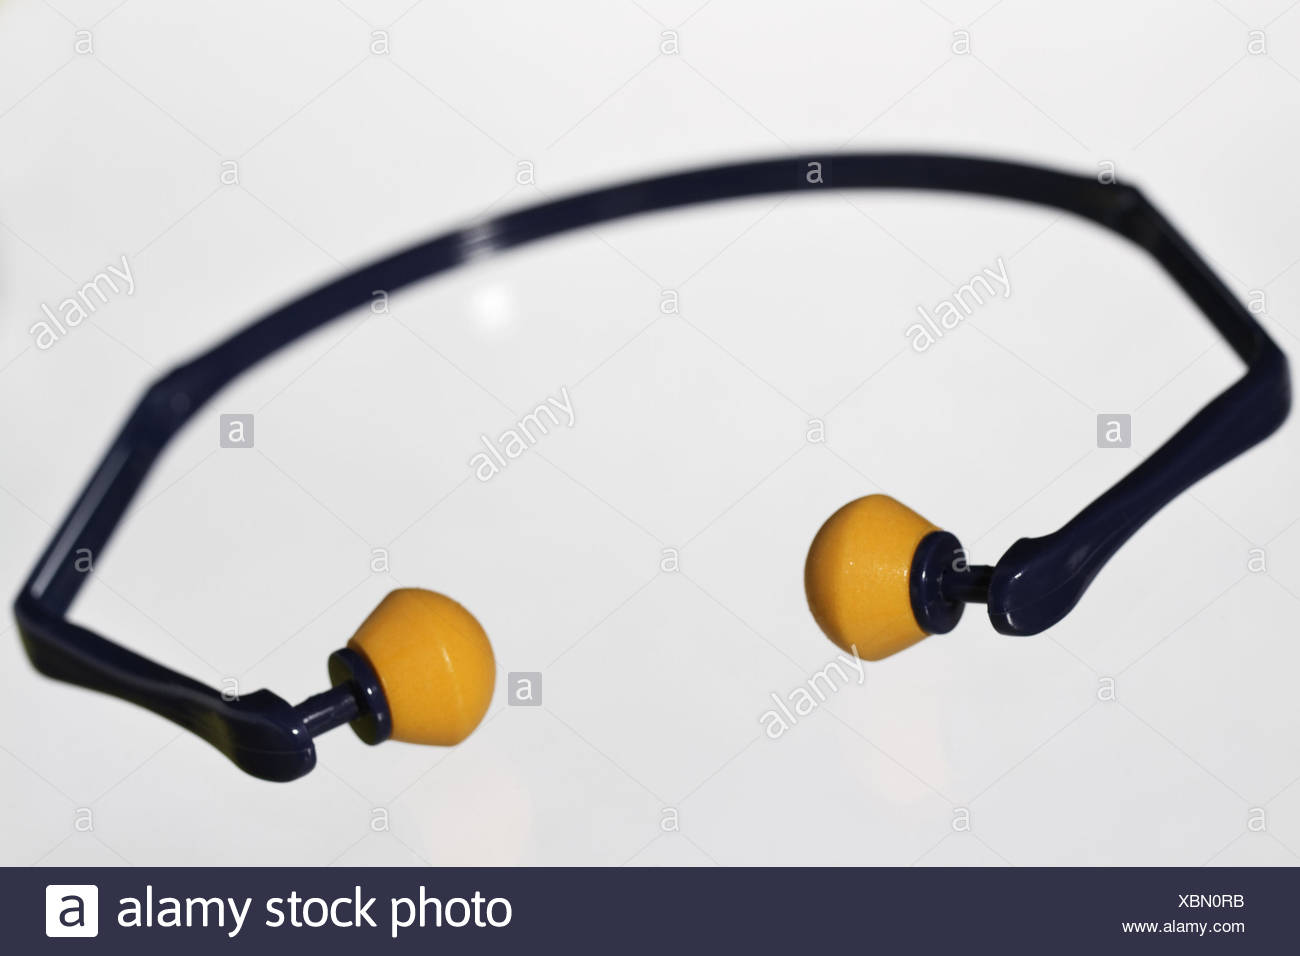 Ear defender, hearing, protection, loudly, noise prevention, noise, ears, work, ear protection, Stock Photo